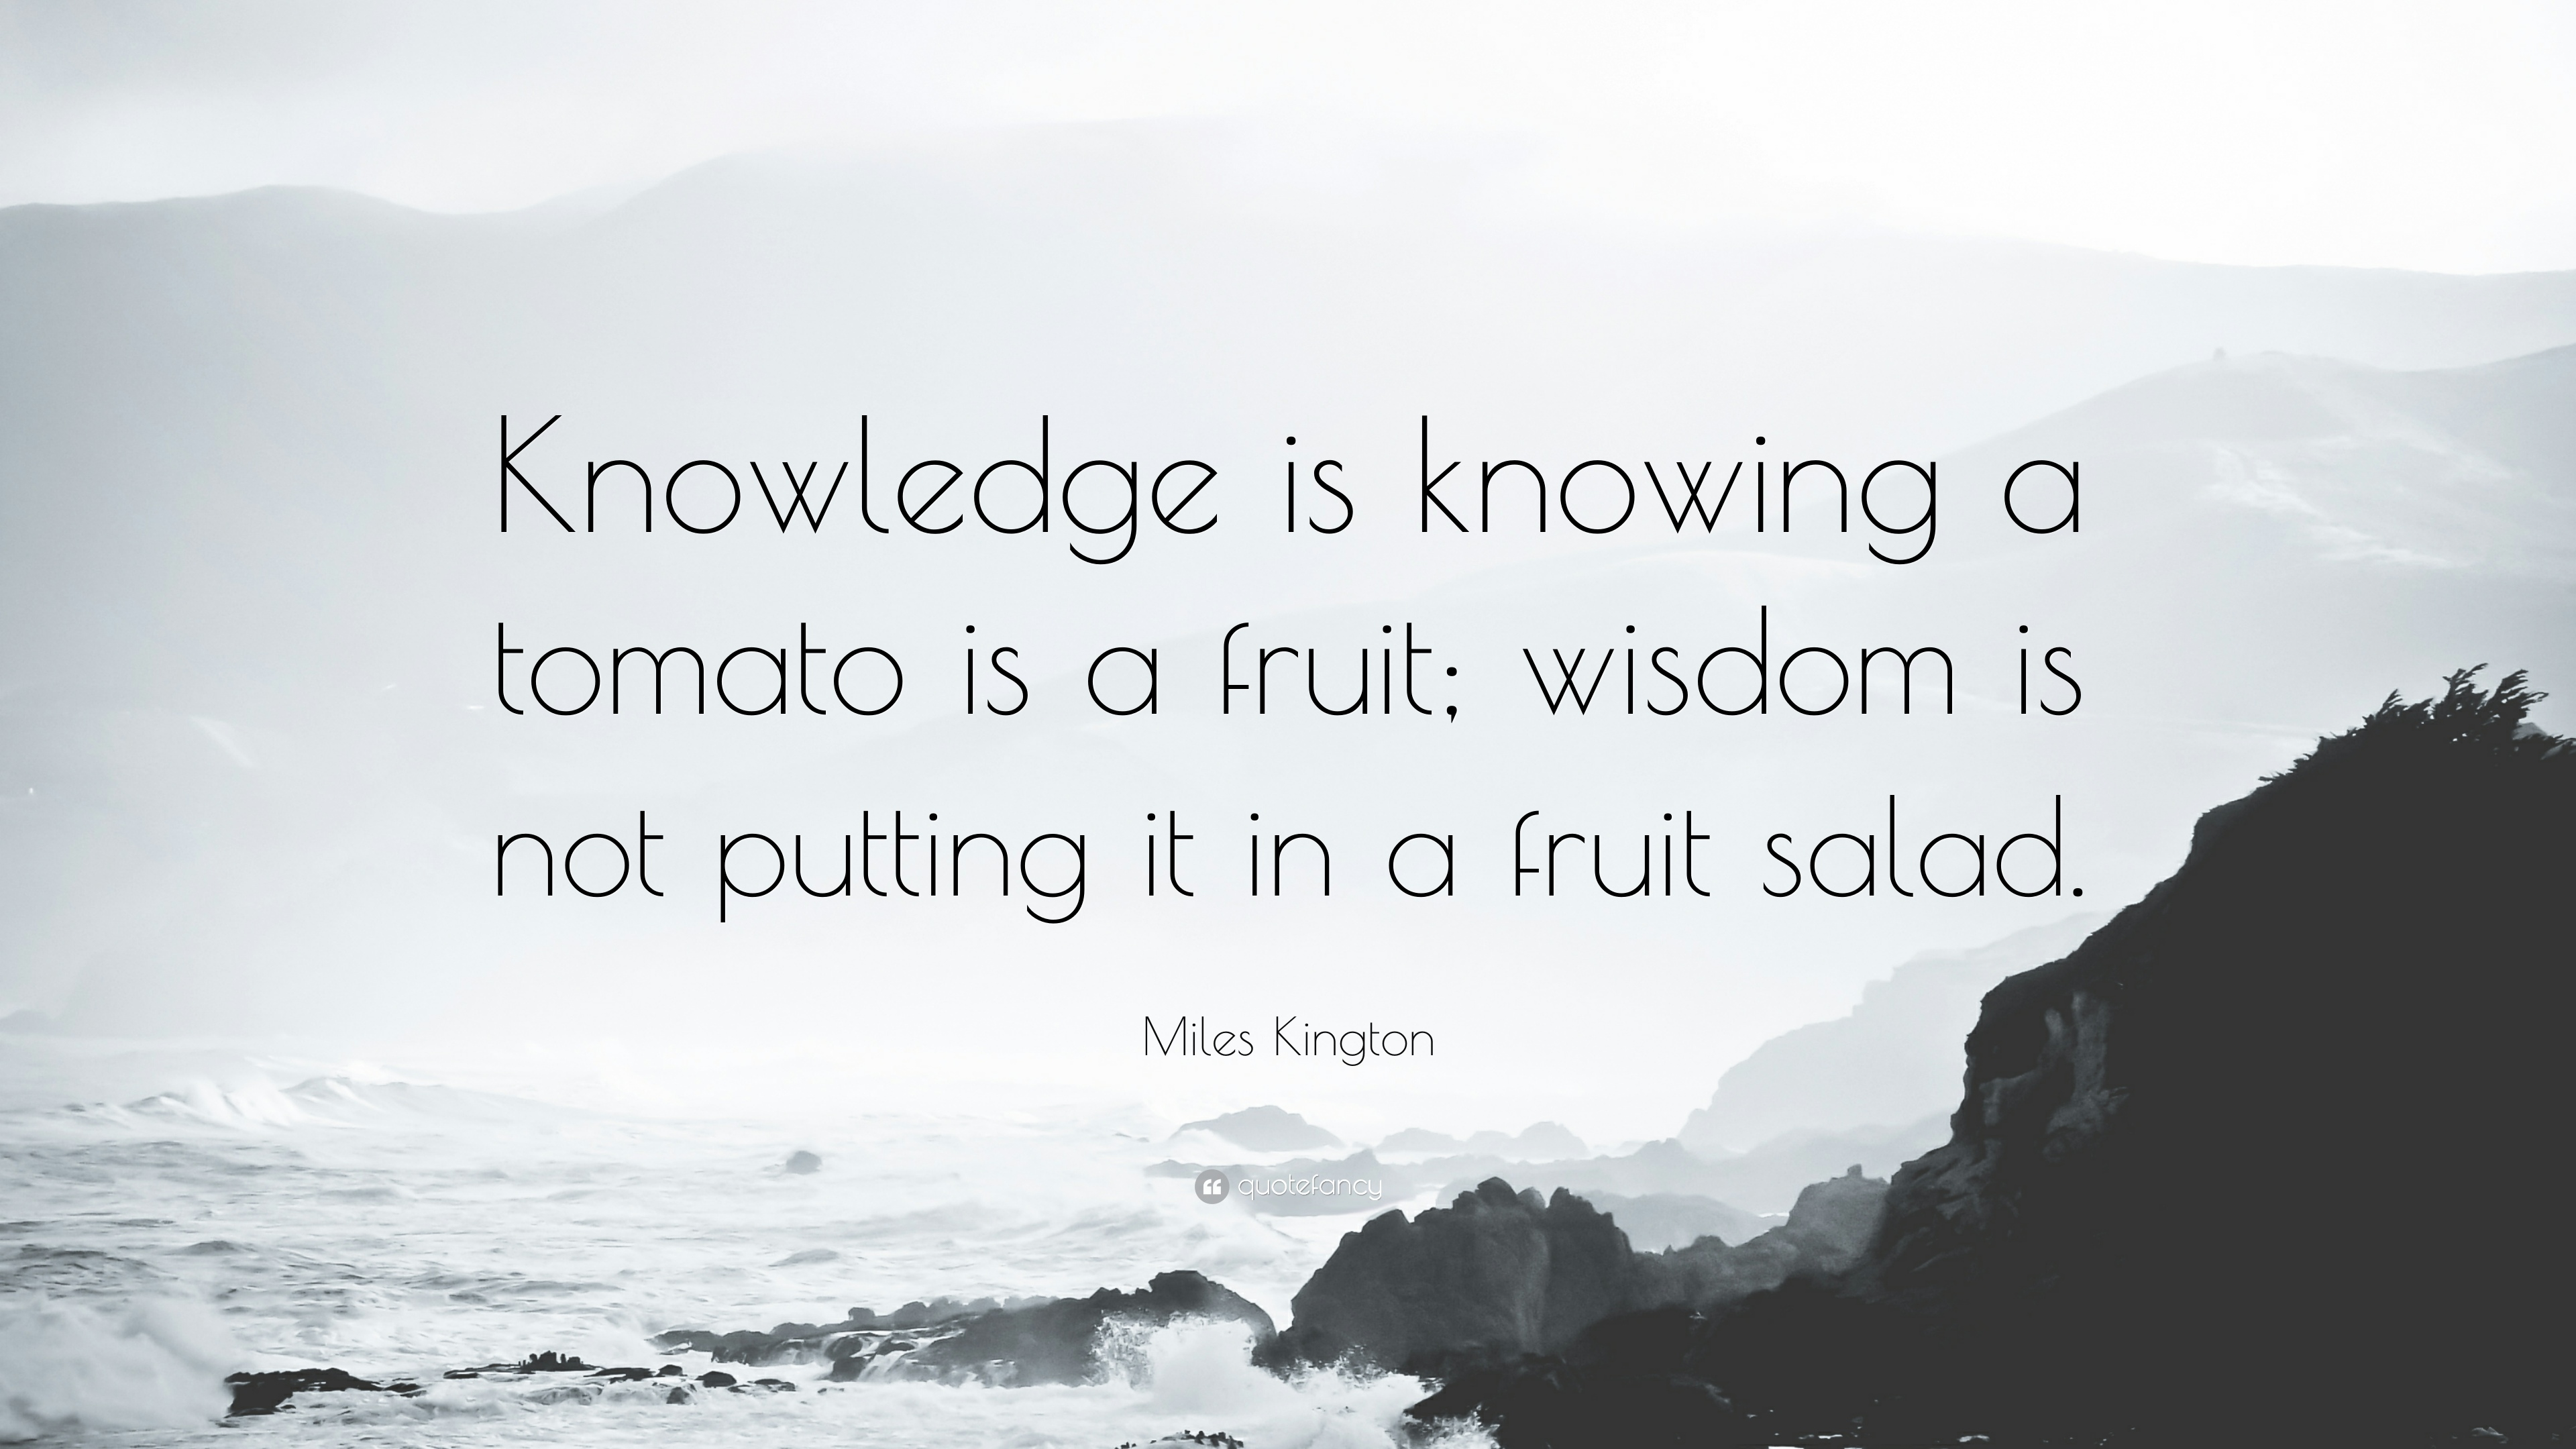 150+ Most Amazing Knowledge Quotes And Sayings For Inspiration